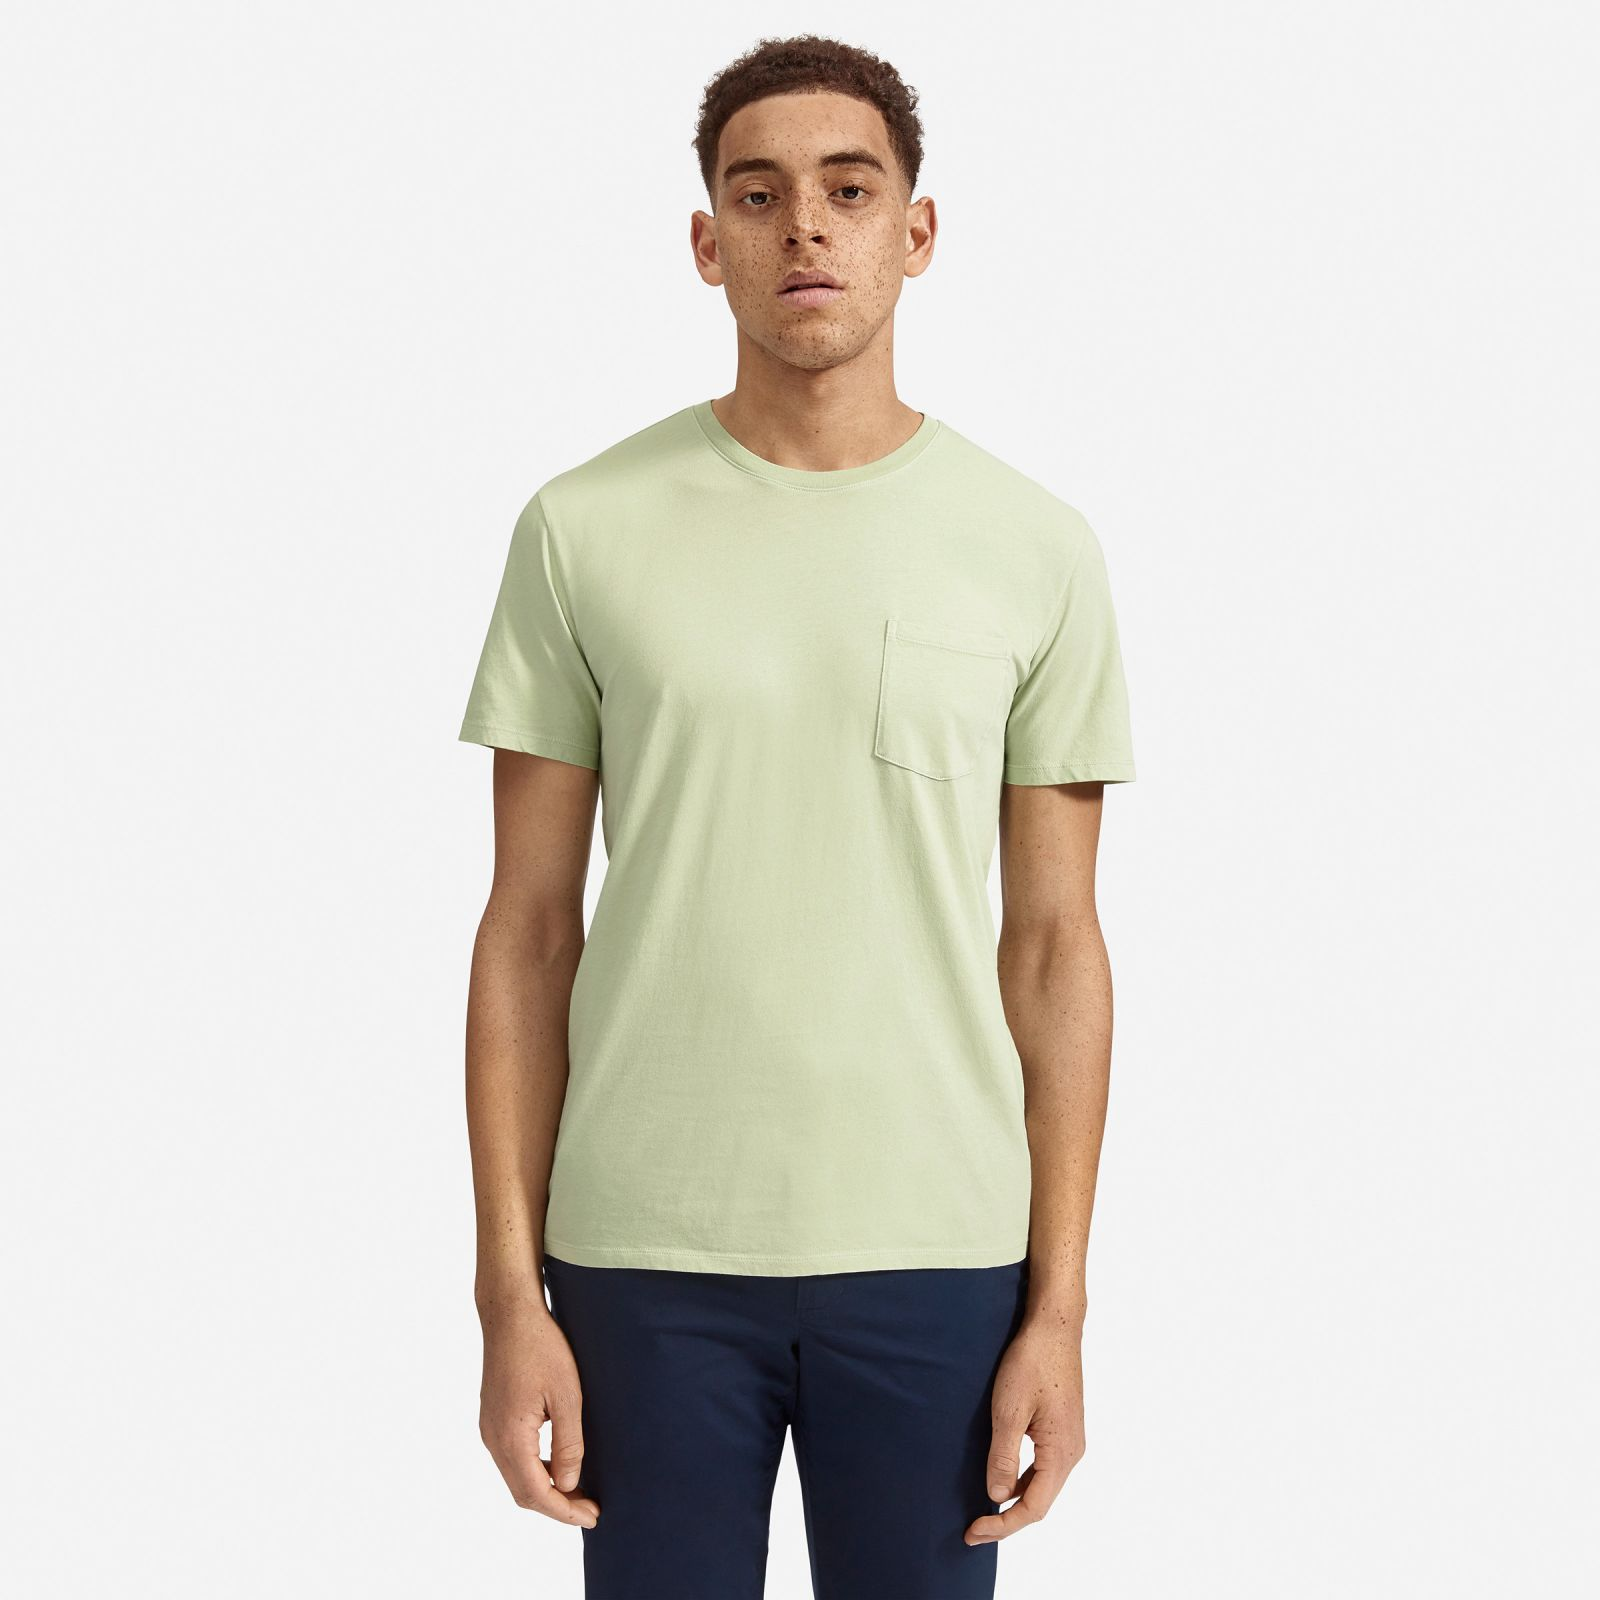 men's cotton pocket t-shirt by everlane in washed mint green, size xxl